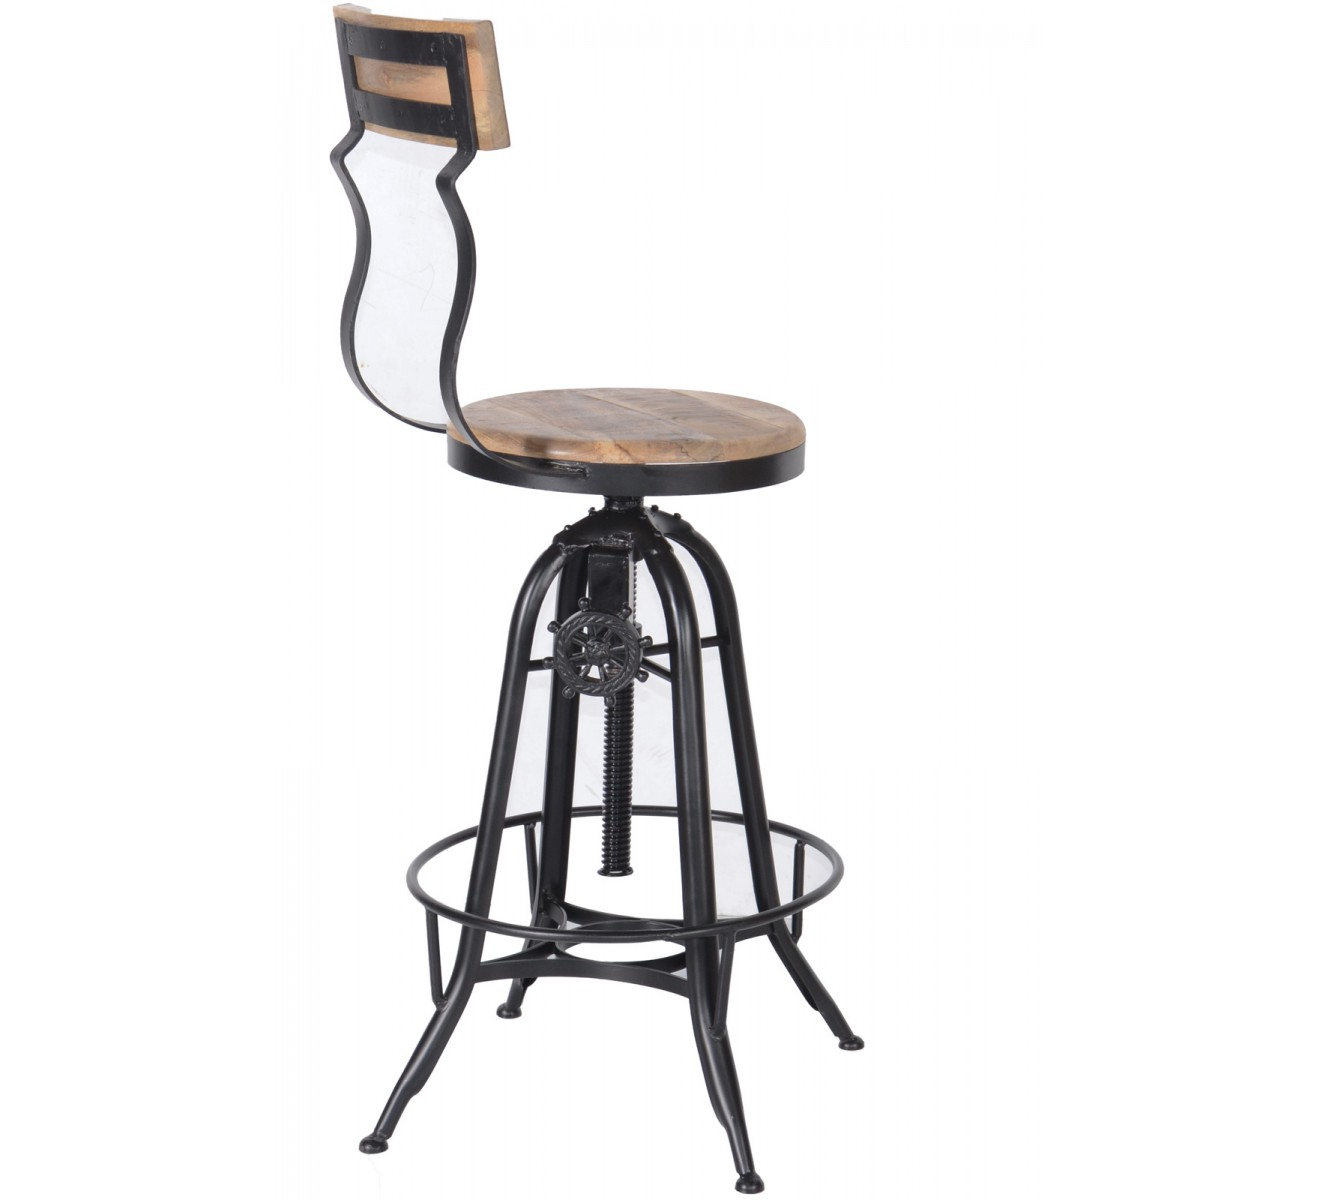 tabouret de bar industriel r glable avec dossier 39 atelier grey 39 6953. Black Bedroom Furniture Sets. Home Design Ideas